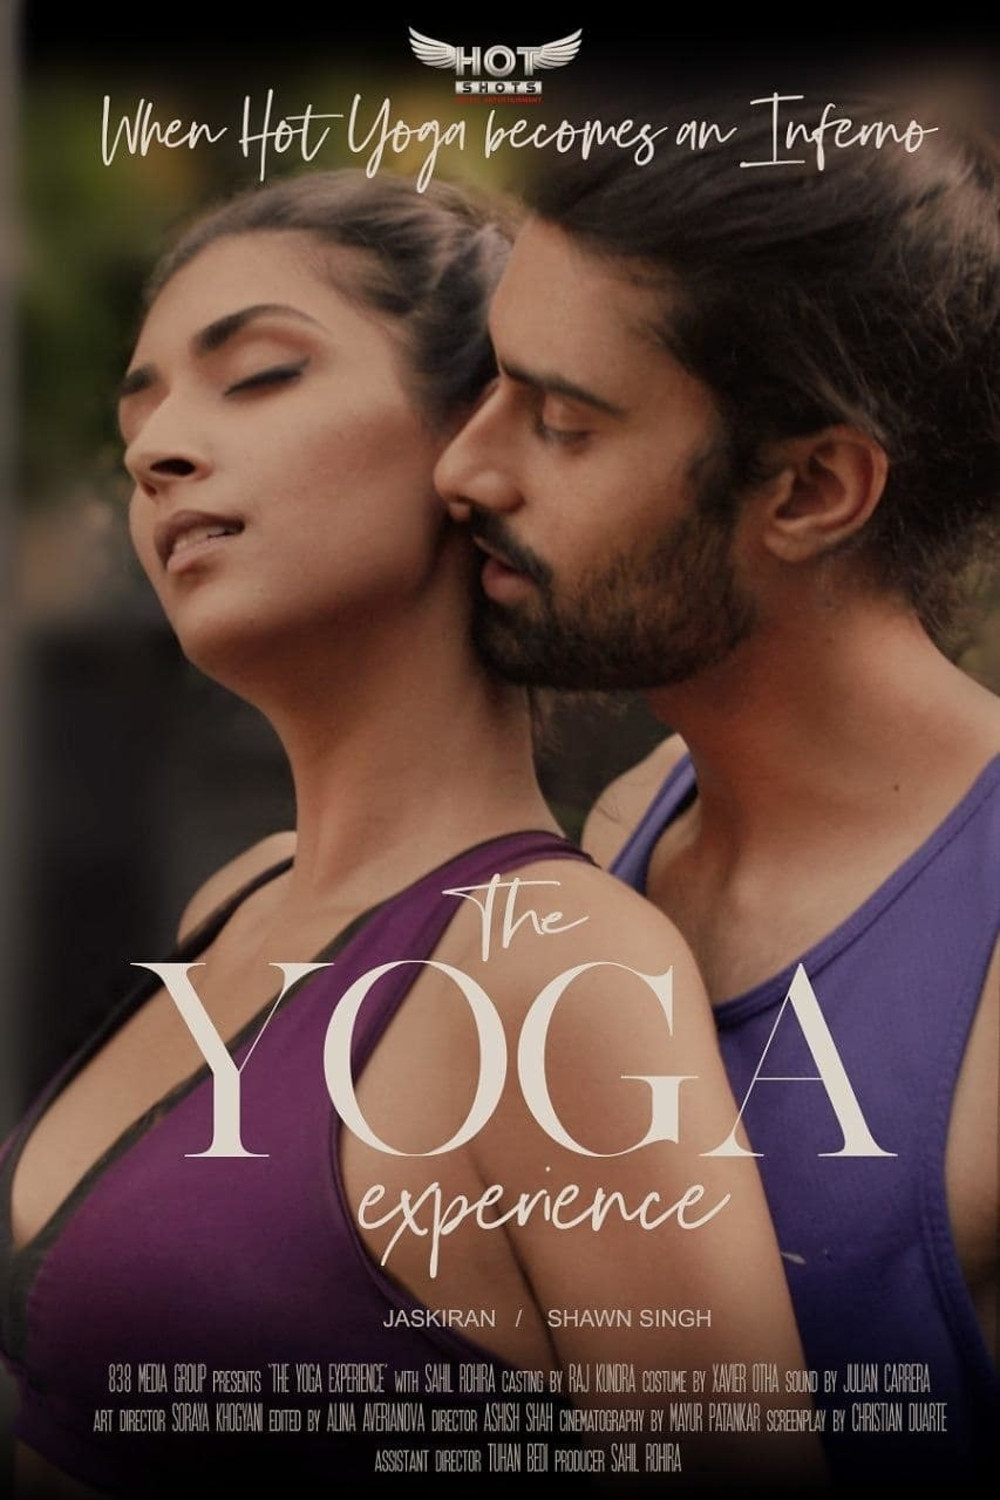 The Yoga Experience (2019)